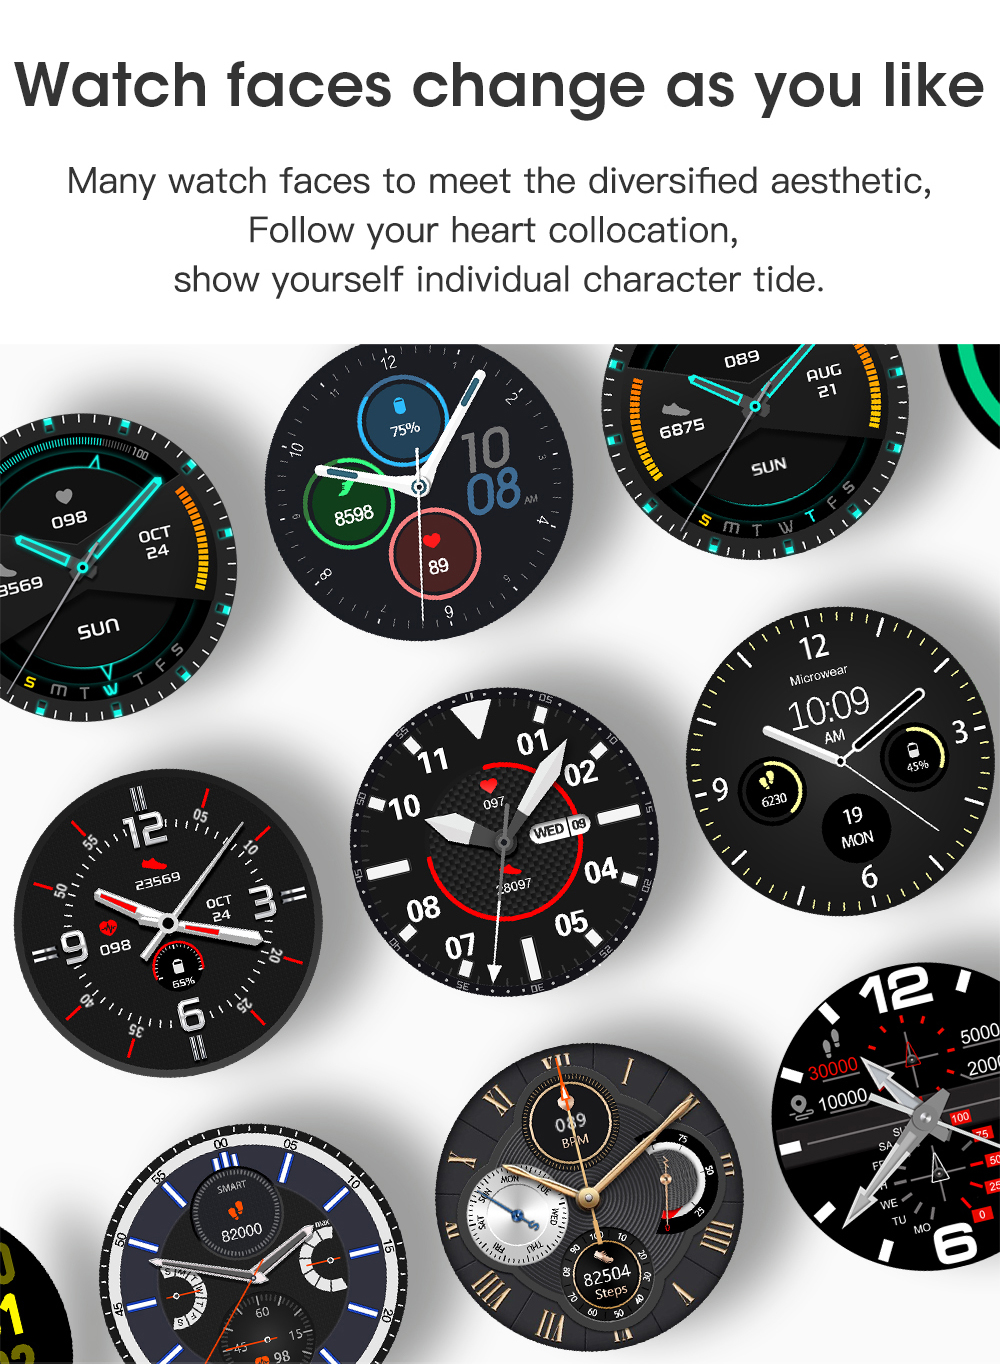 H358e4d334dc743f7bc8f91f414534f68Q Timewolf Smart Watch Men 2021 IP68 Waterproof Android Full Touch Sports Smartwatch Bluetooth Call For Samsung Huawei Android IOS